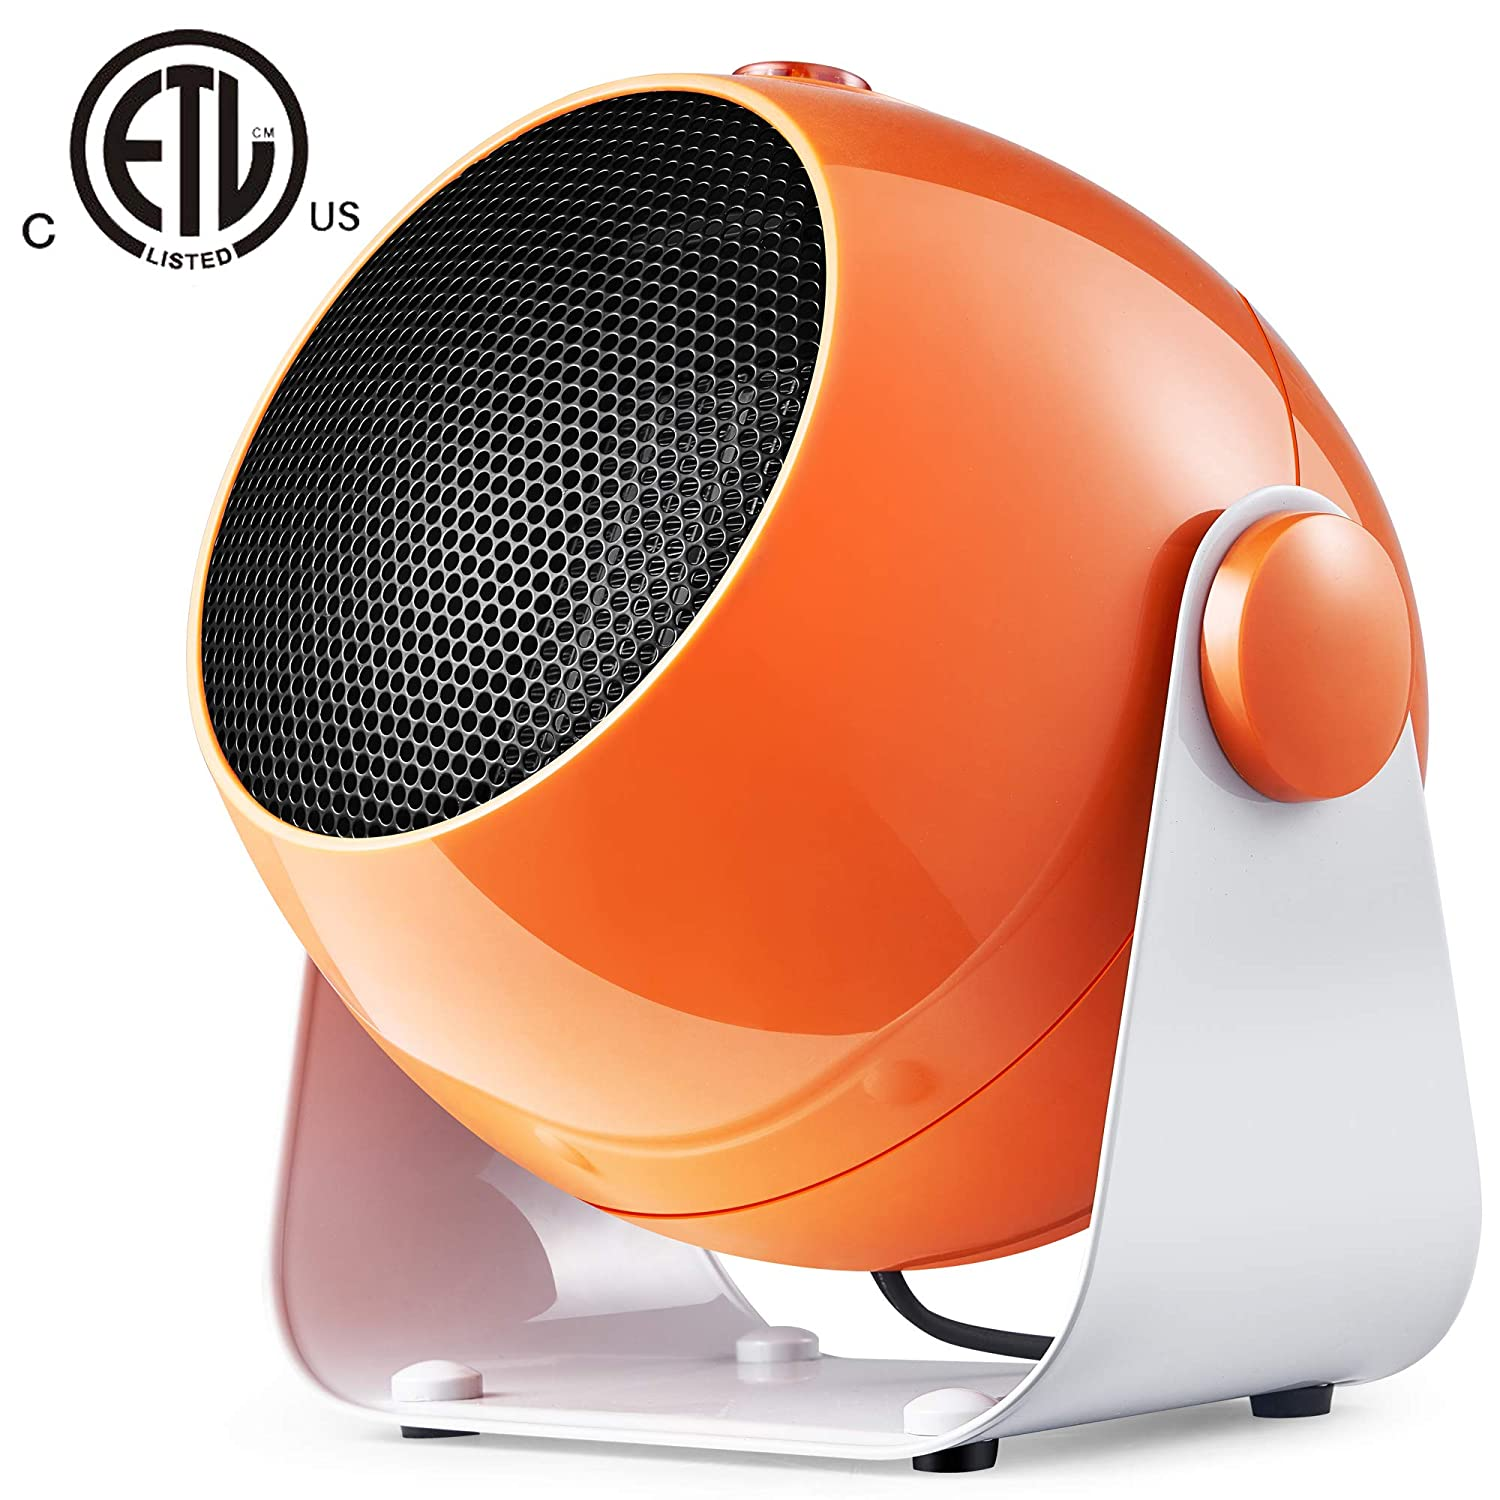 Bojing 1500W/900W Ceramic Portable Indoor Quiet Air Fan Space Heater with Thermostat, Personal Electric Tilt Head Heater for Home and Office